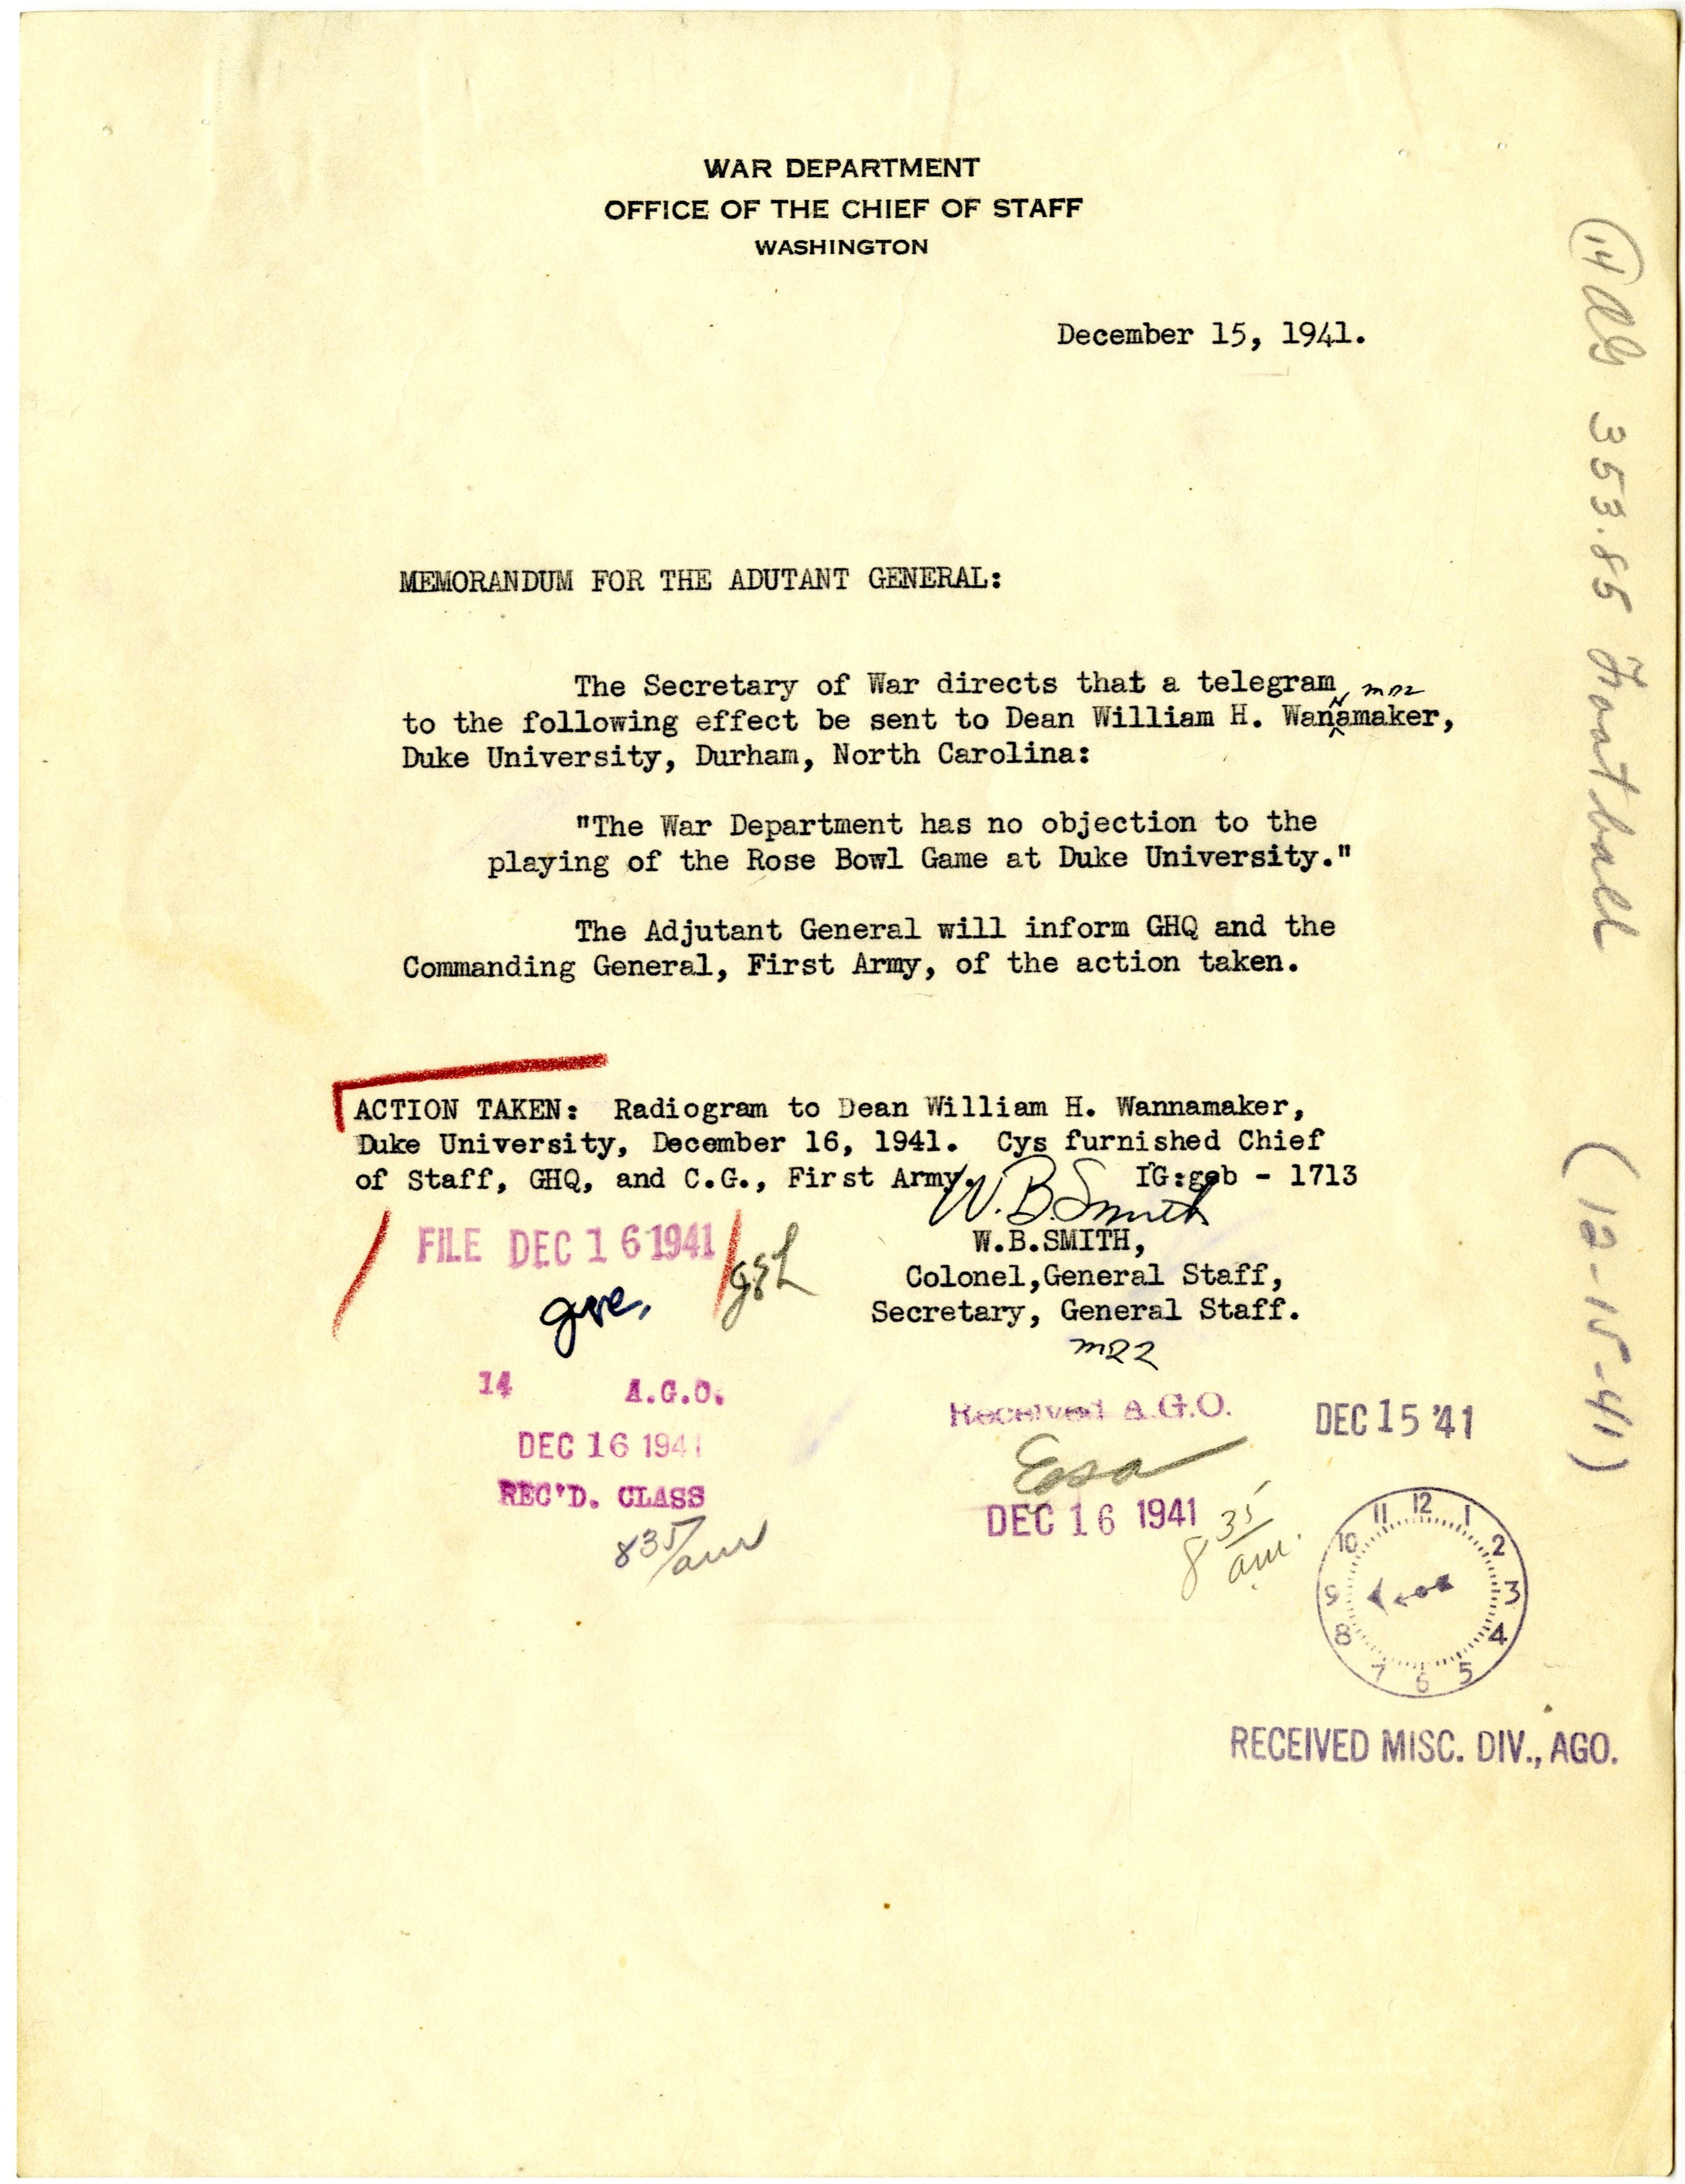 Memorandum for the Adjutant General from Colonel W. B. Smith, 12/15/1941